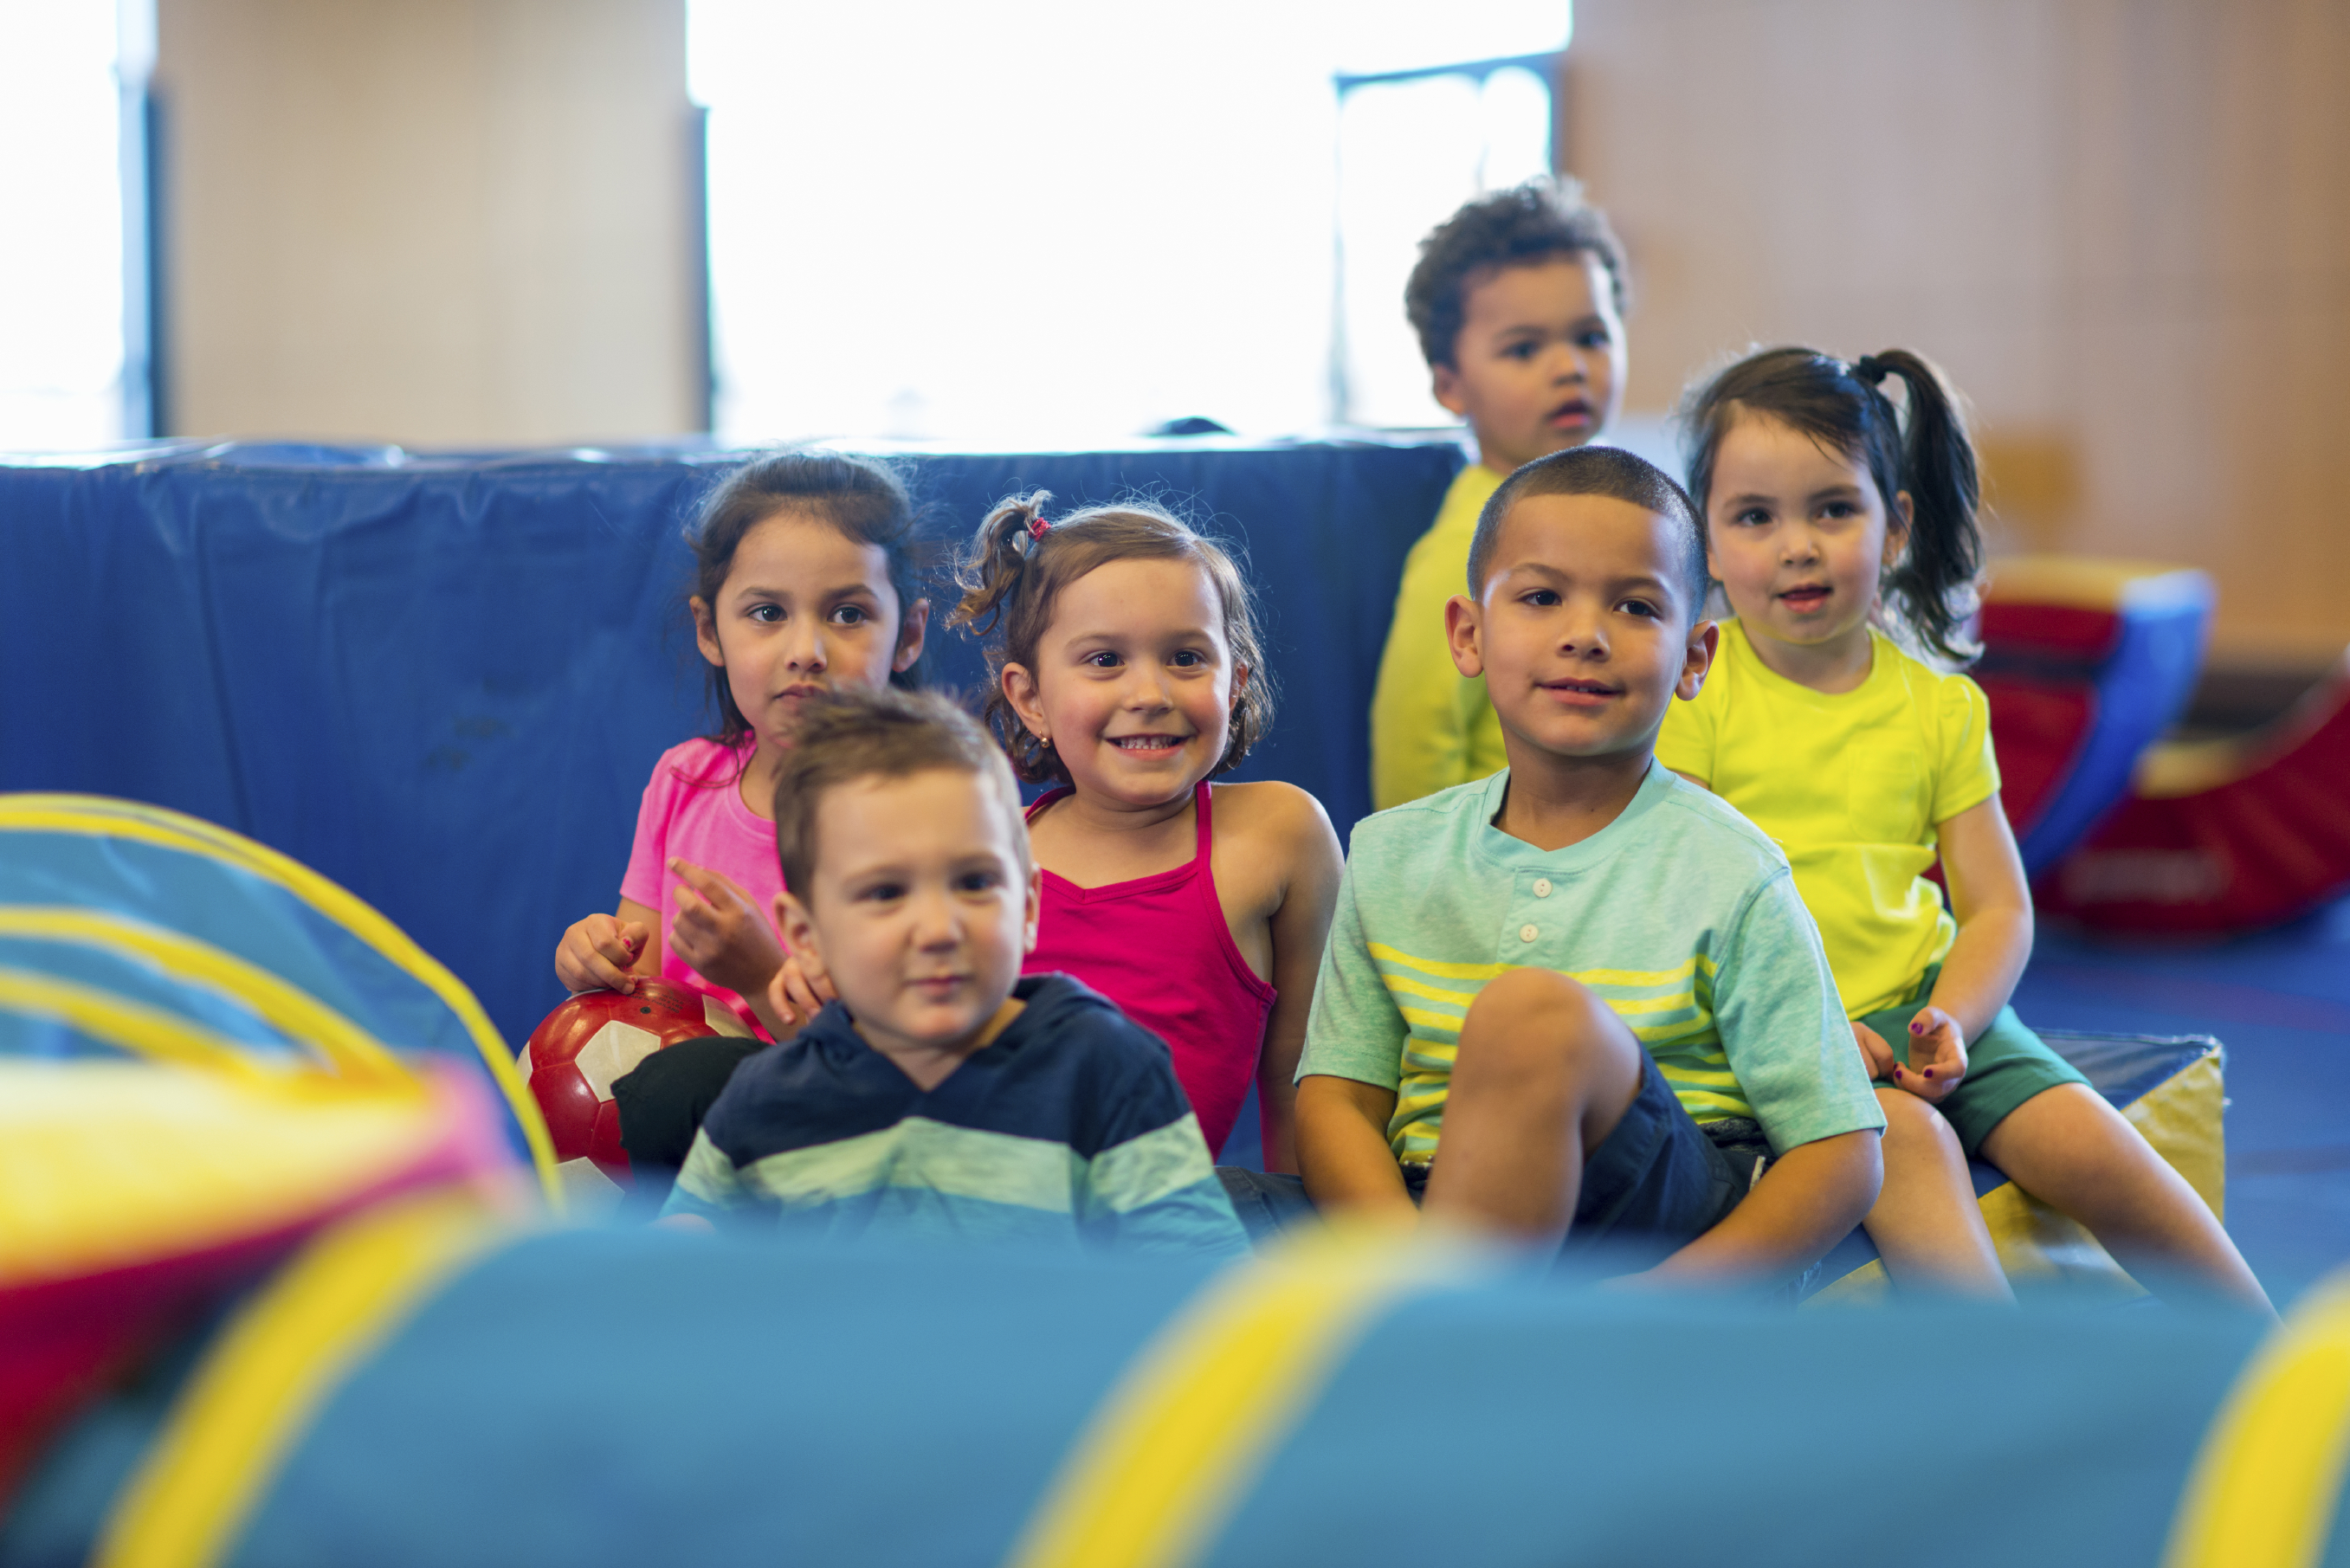 Fun Fitness And Fostering Character 9 Tips To Make Youth